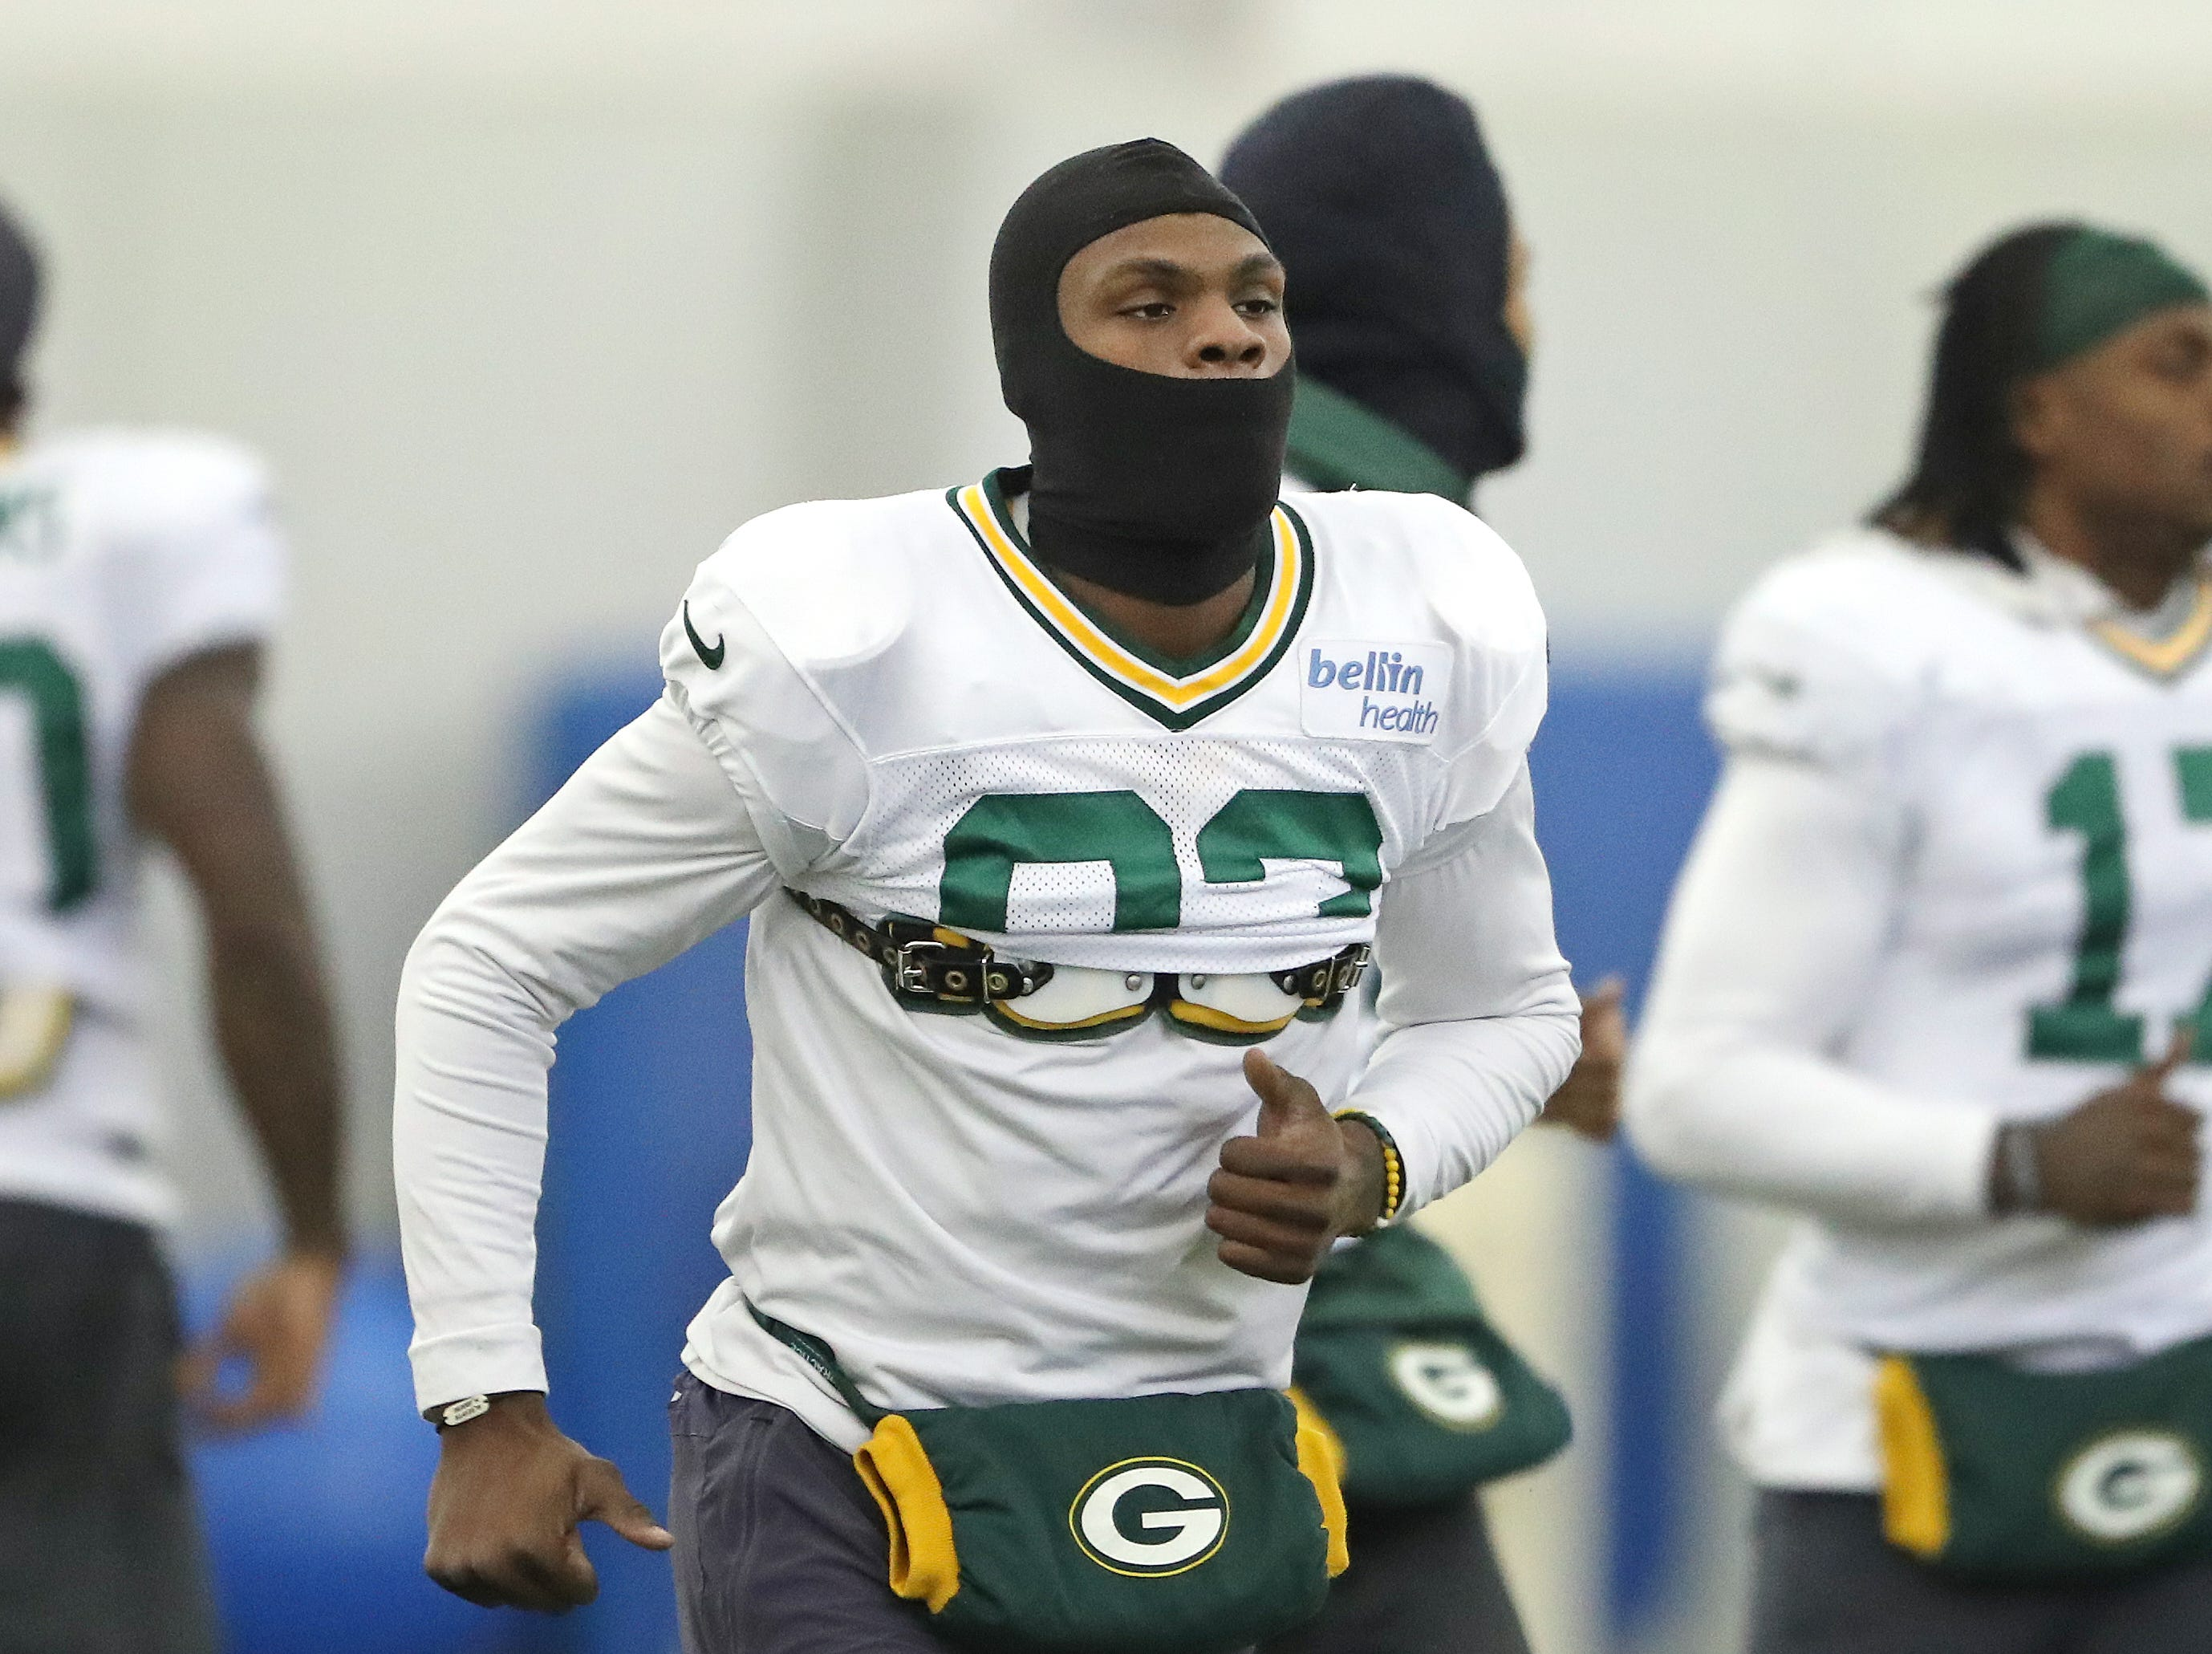 Green Bay Packers wide receiver Marquez Valdes-Scantling (83) keeps the warm headgear going even inside during practice Thursday, December 6, 2018 inside the Don Hutson Center in Ashwaubenon, WIs.